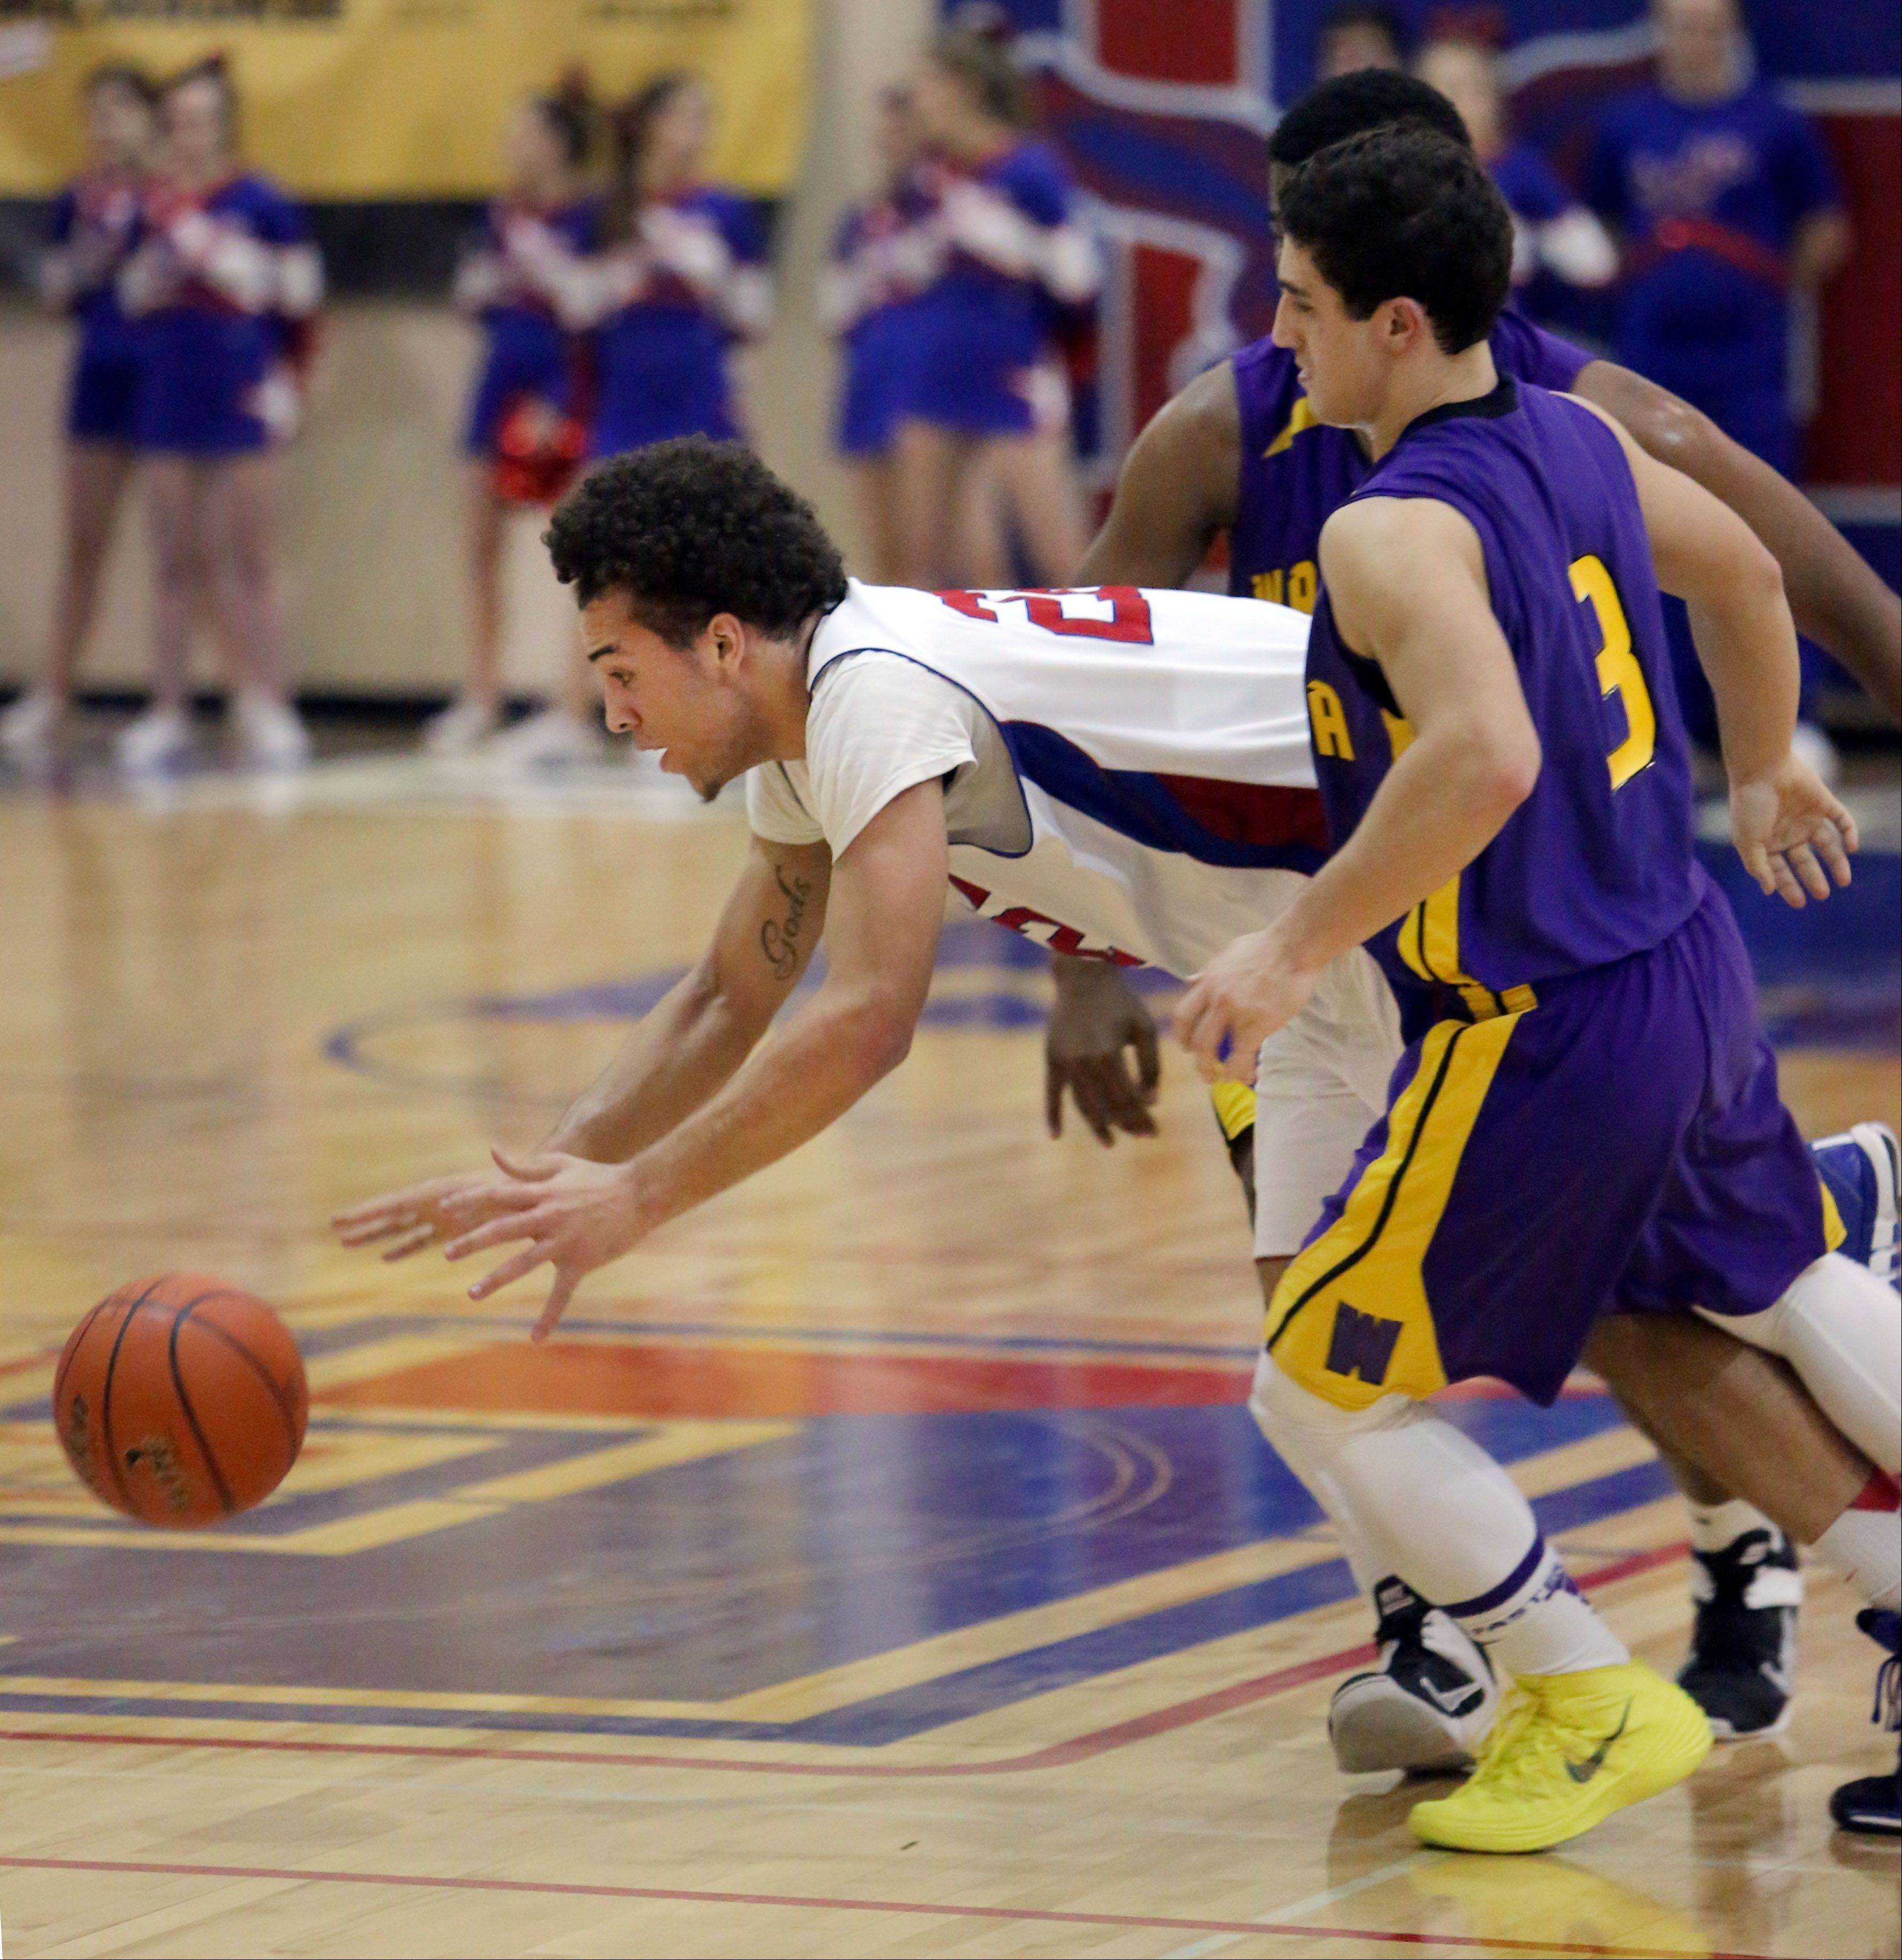 Lakes' Tramone Hudson dives for a loose ball as Wauconda's Joey Lovelle defends on Tuesday night at Lakes.